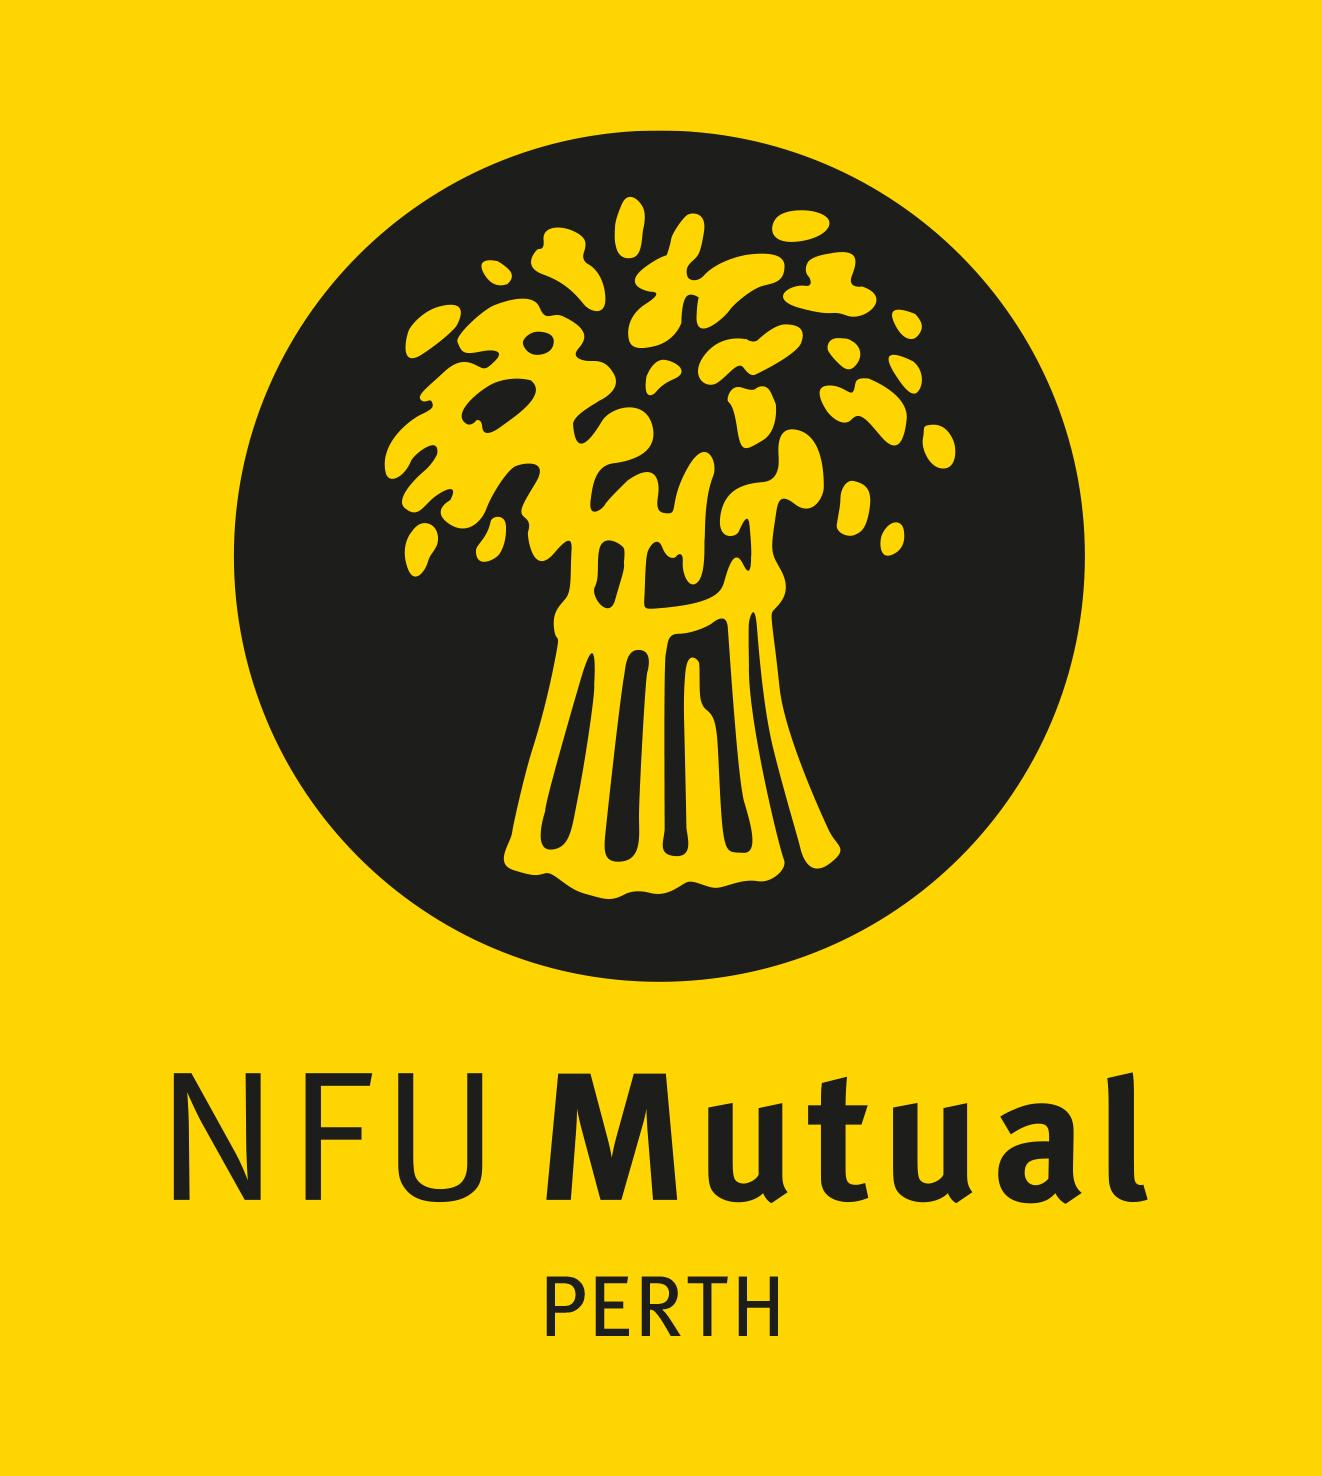 NFU Mutual Perth